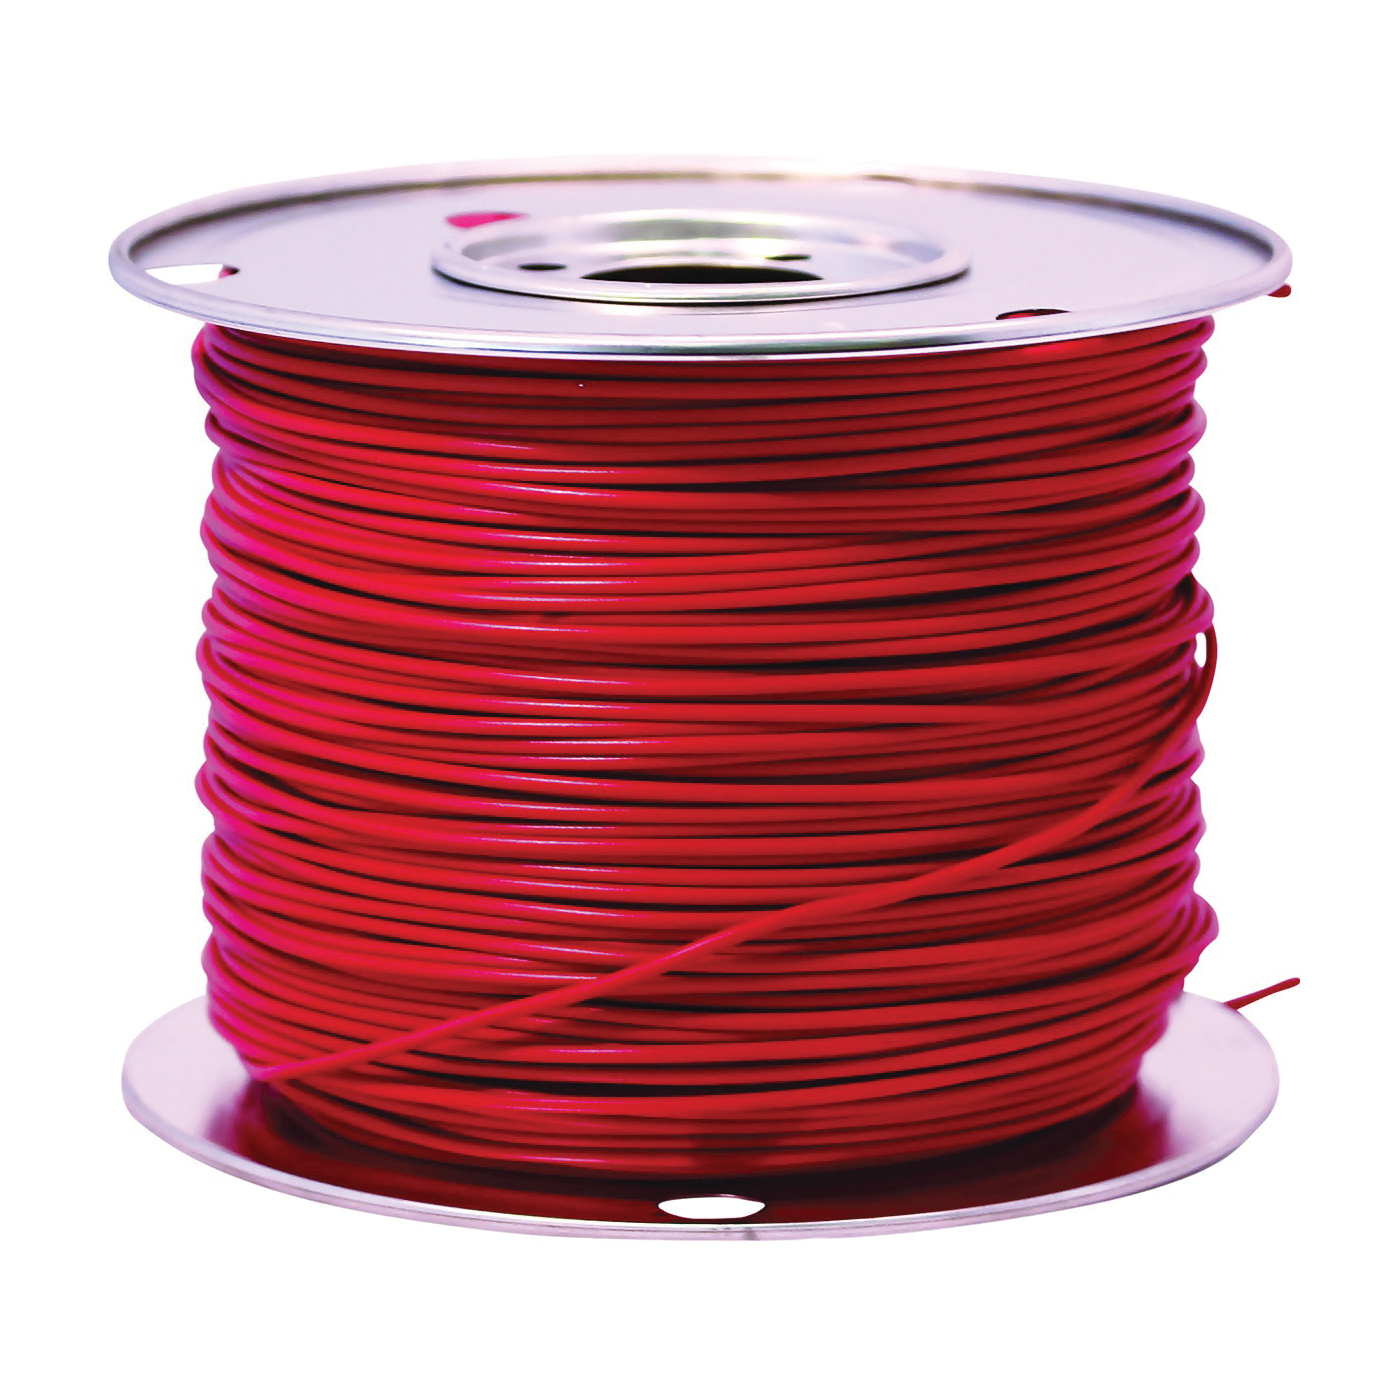 Picture of CCI 55668023 Primary Wire, 16 AWG Wire, 1 -Conductor, 60 VDC, Copper Conductor, Red Sheath